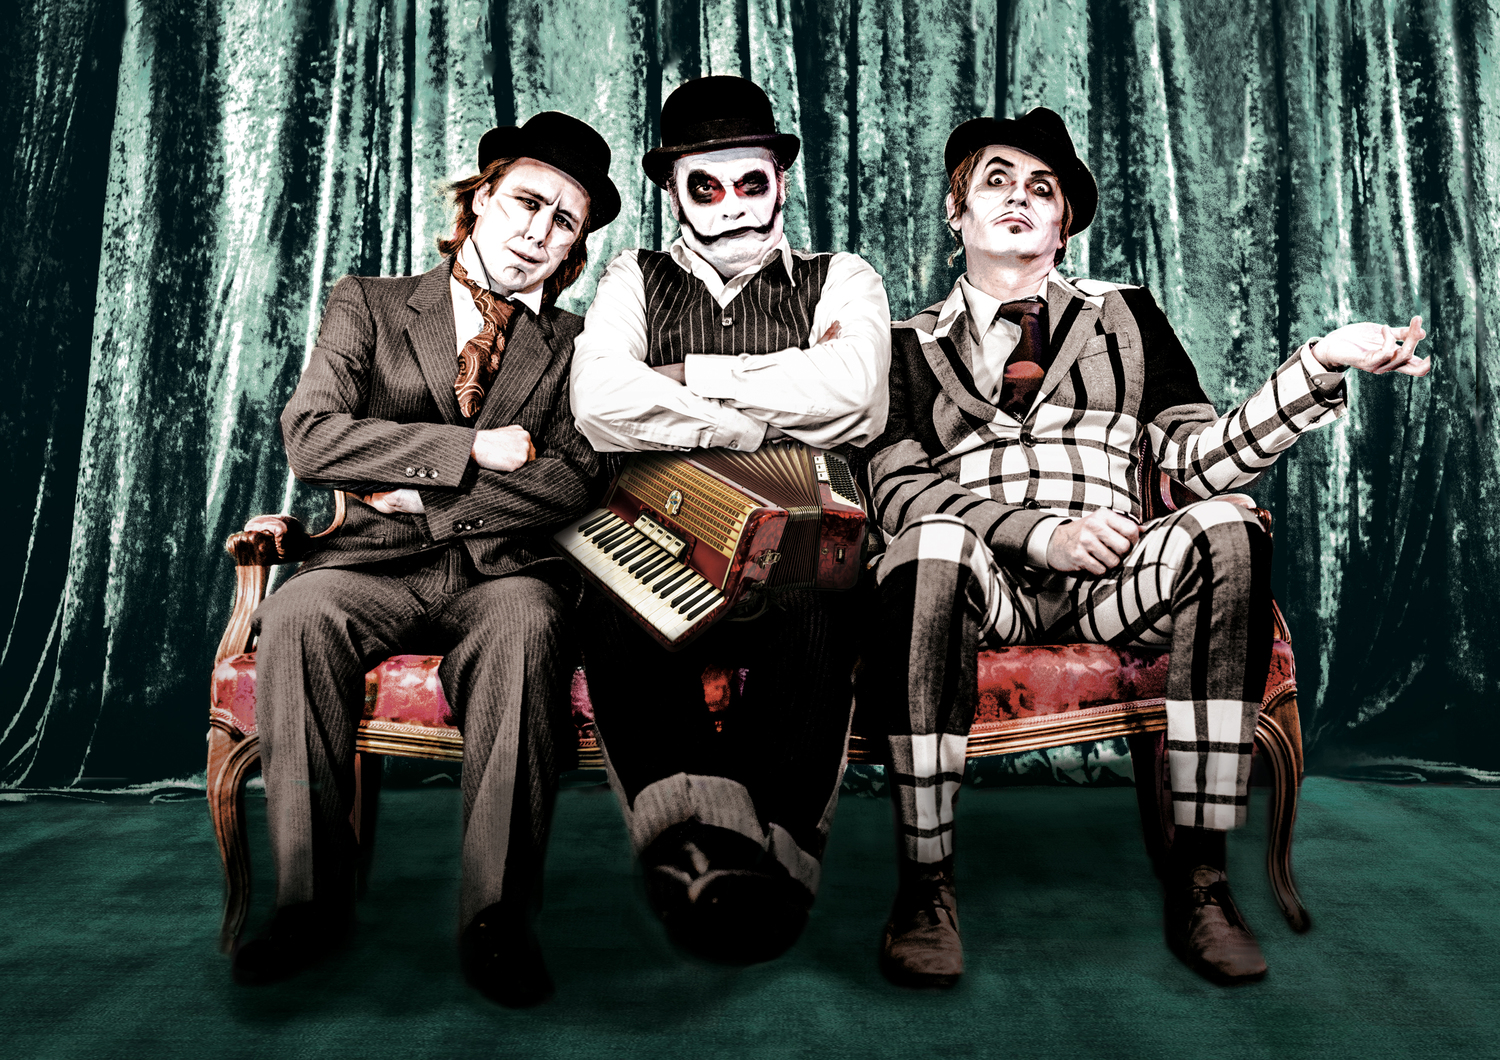 BWW Preview: THE TIGER LILLIES at Admiralspalast - The British Cult Trio on European Tour bring their comedic stylings to Berlin